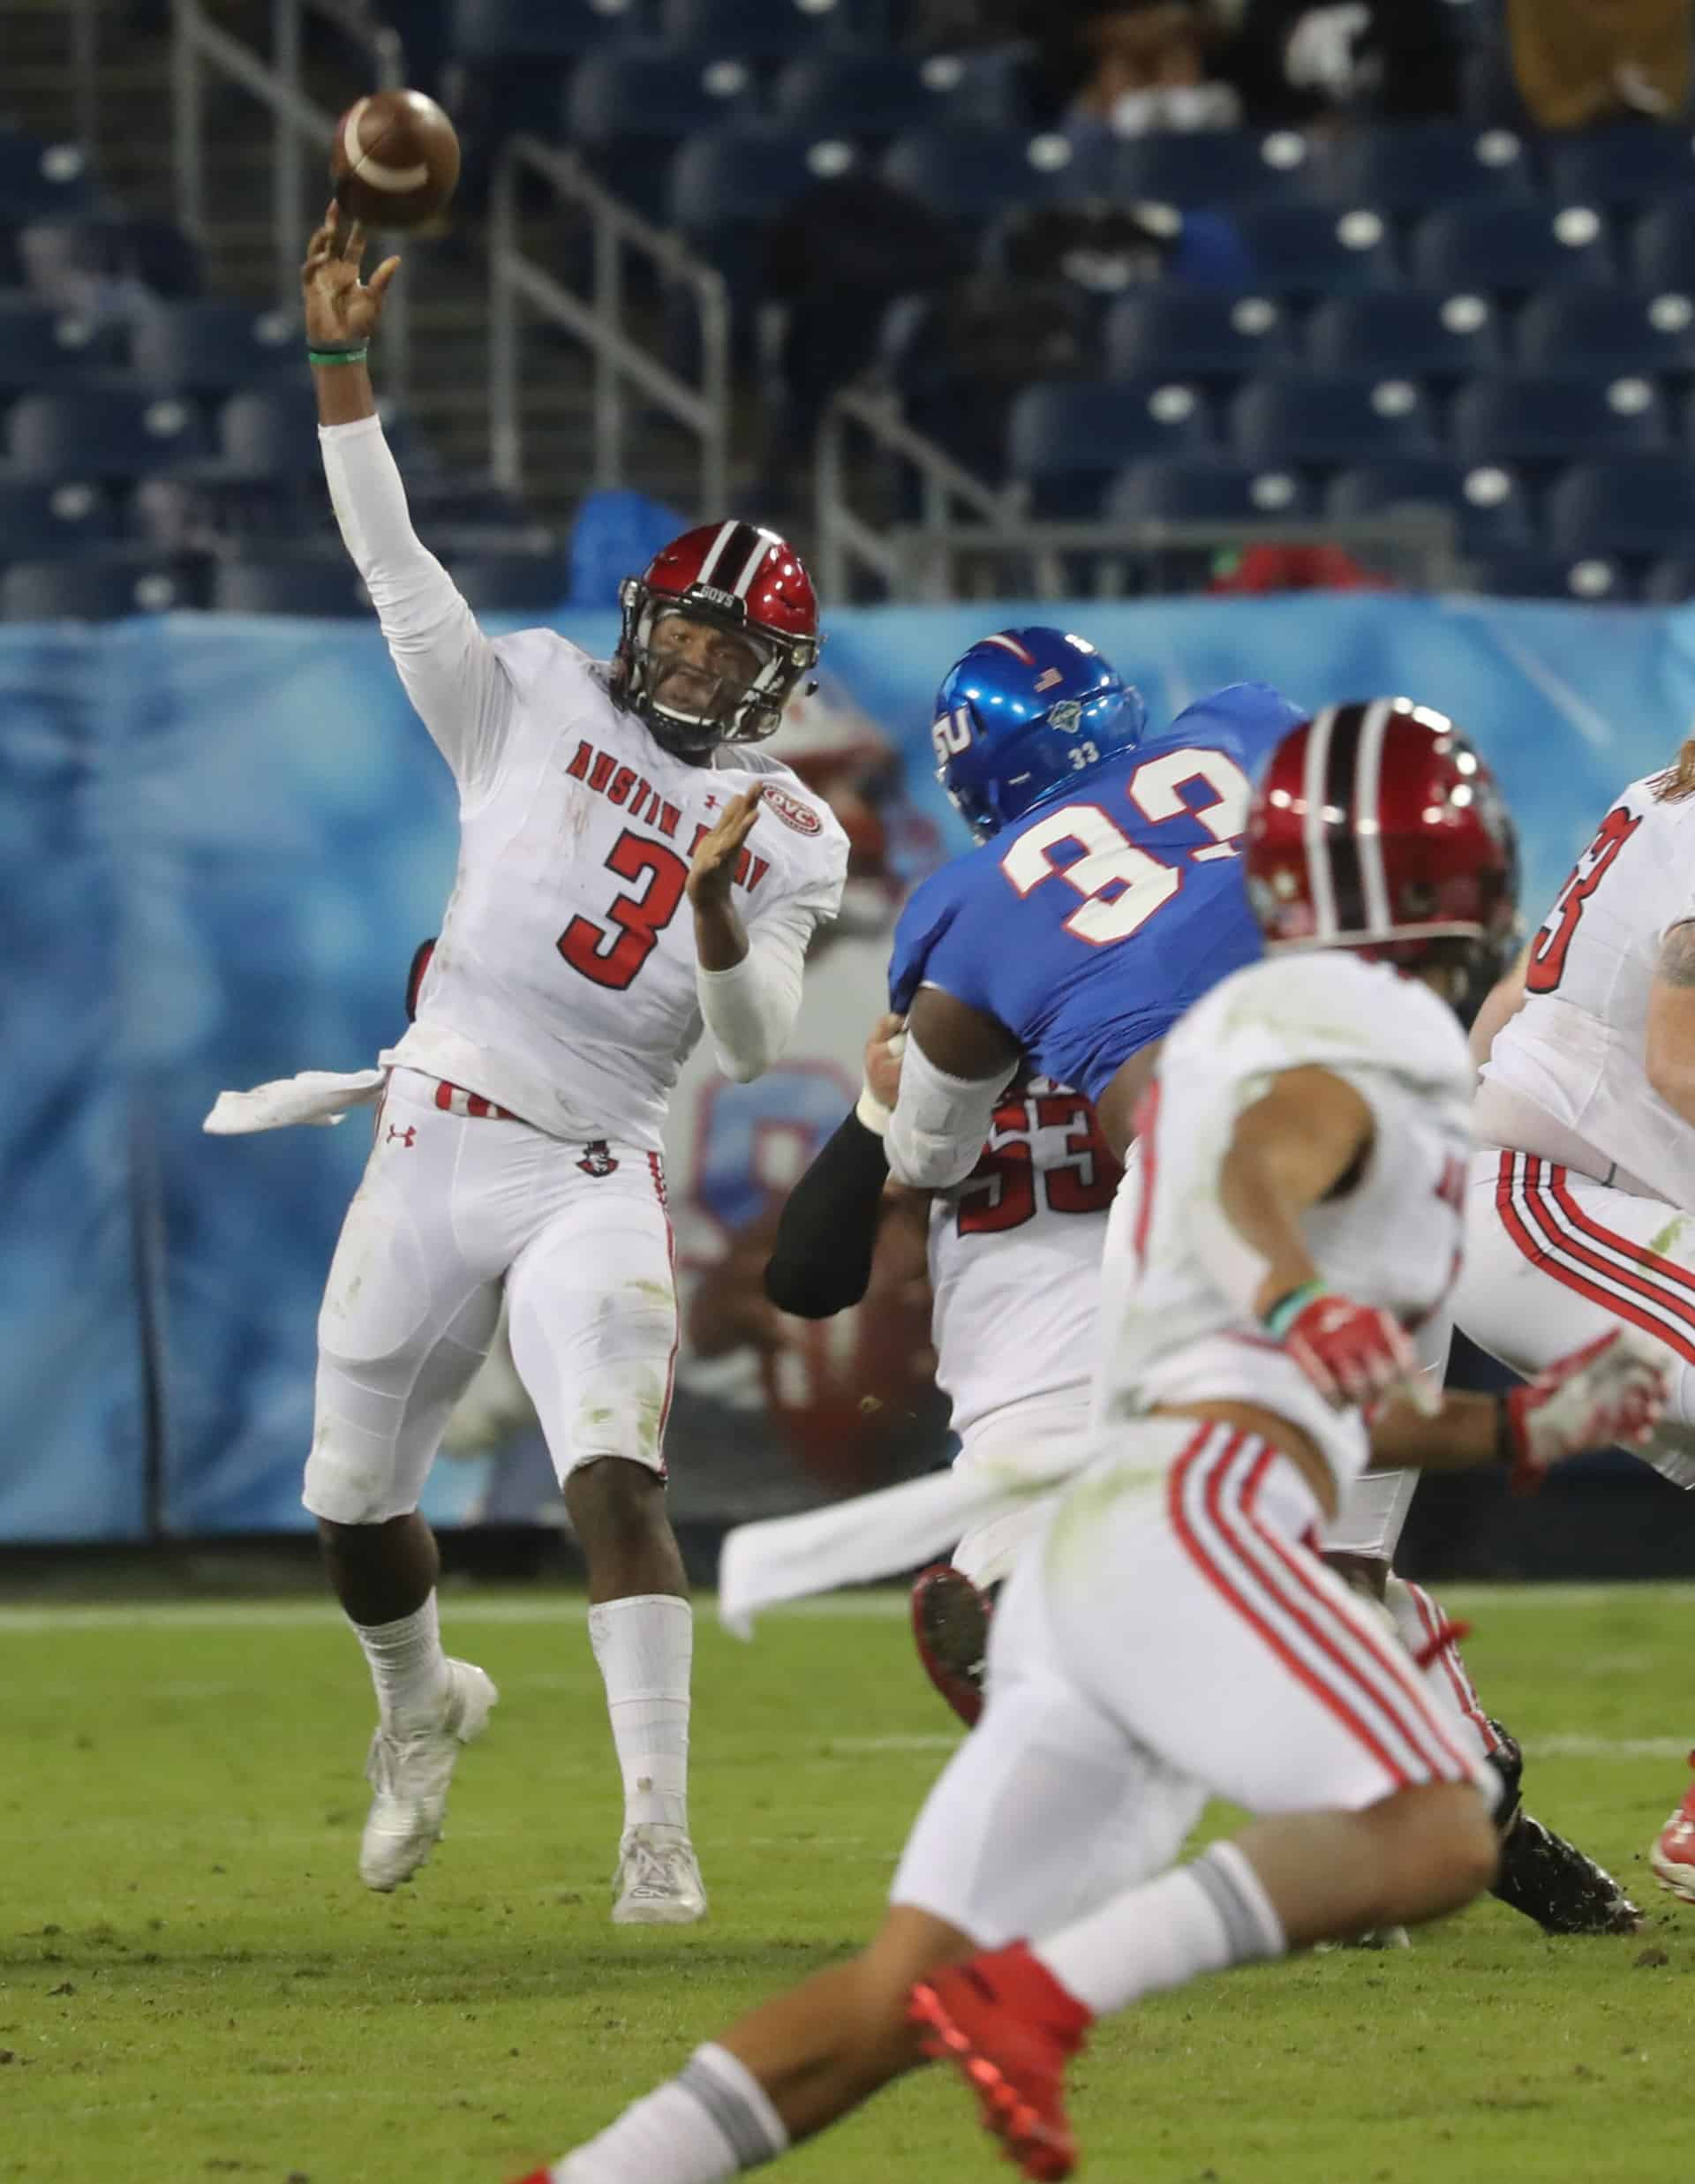 JaVaughn Craig rolls and delivers one of his 18 completions he delivered in the loss against the TSU Tigers.